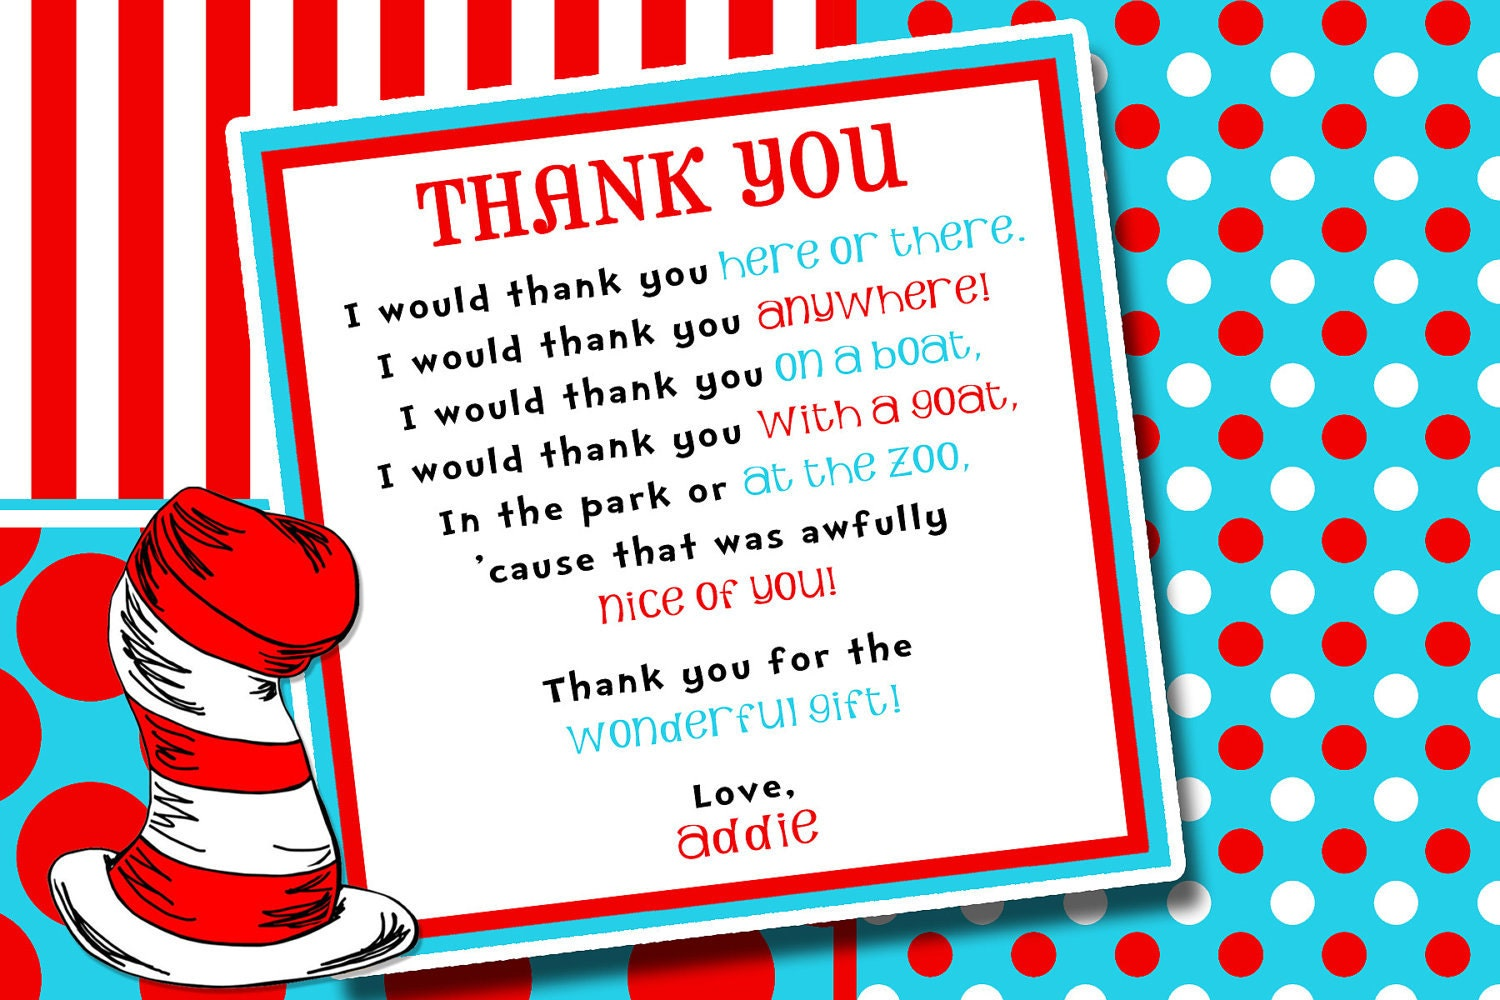 Hat seuss thing and thank you card birthday party invitation img1systatic monicamarmolfo Images